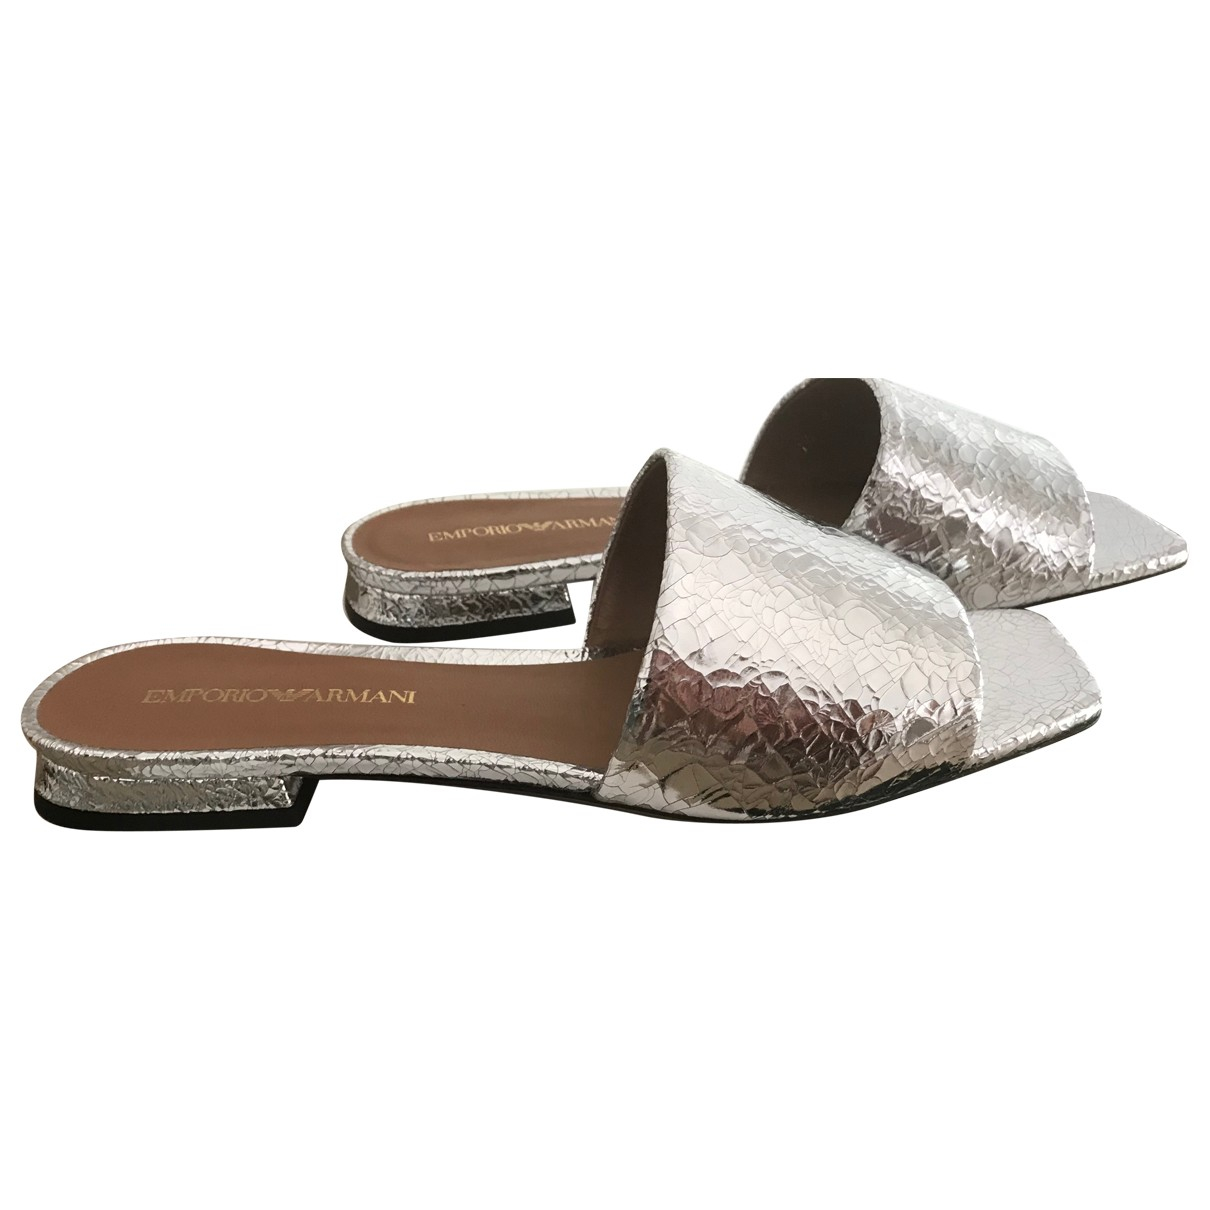 Emporio Armani \N Silver Leather Sandals for Women 38 EU